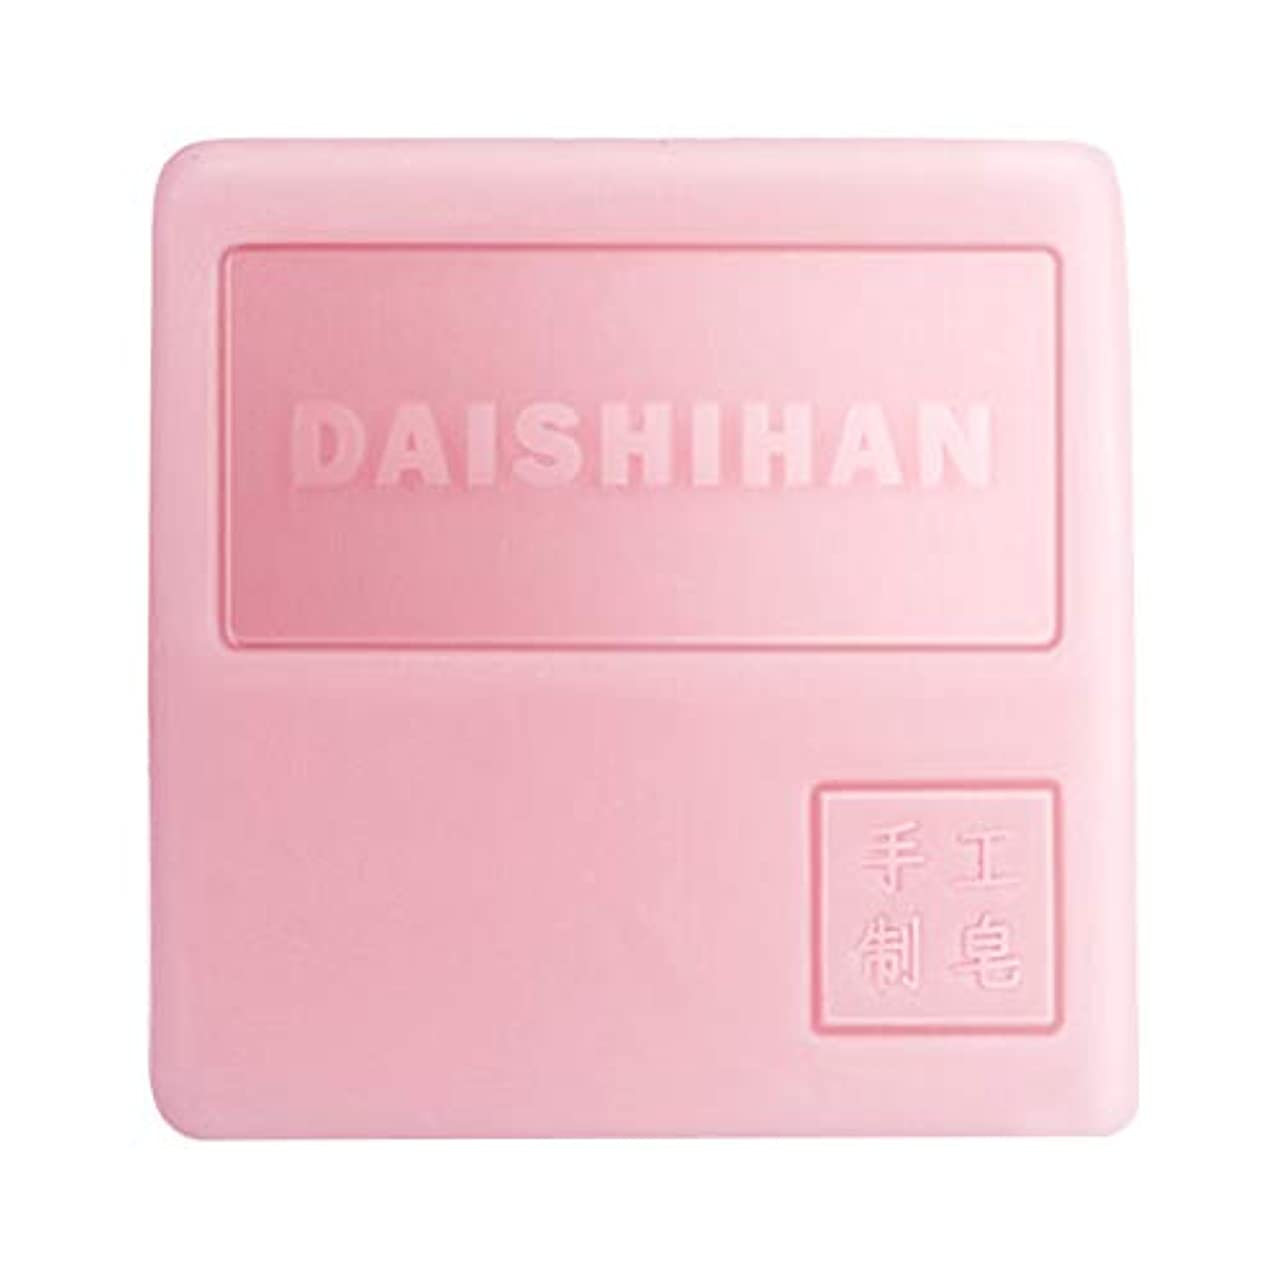 フェード事前にファックスTOPBATHY Skin Whitening Soap Body Natural Handmade Soap Bar Women Private Body Bath Shower